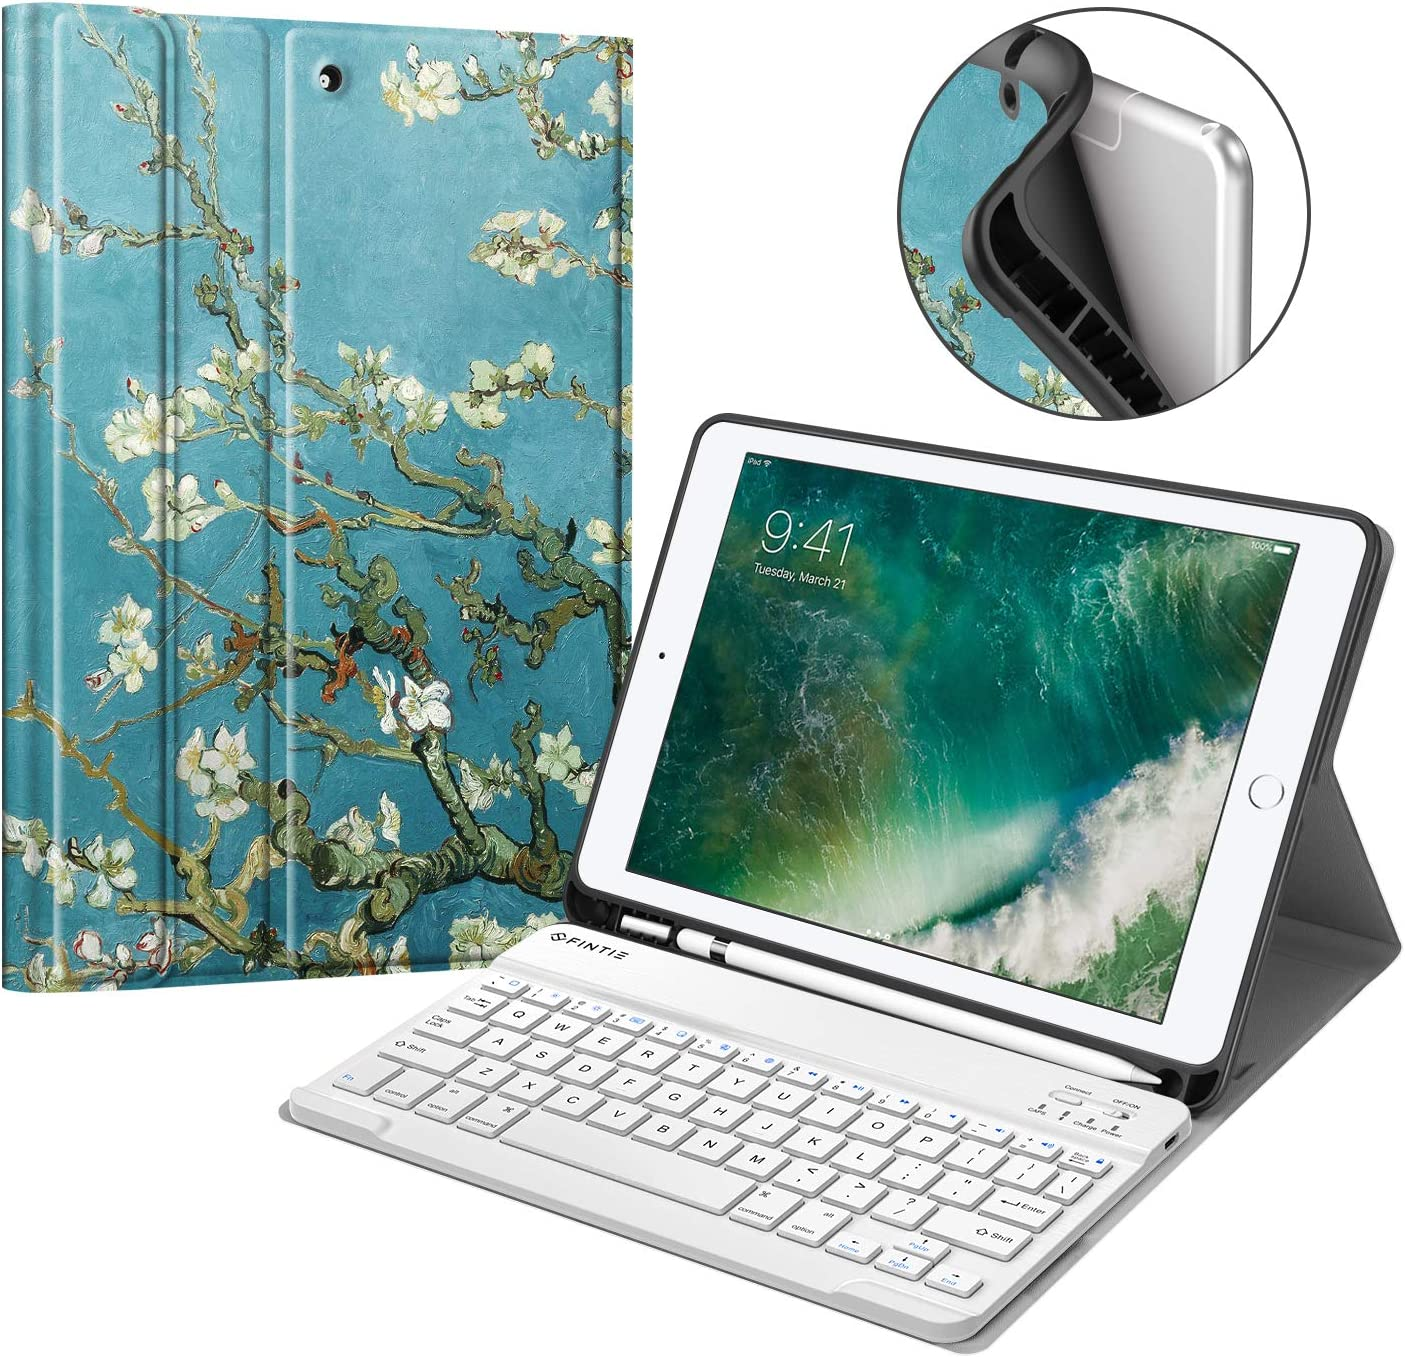 Fintie Keyboard Case for iPad 9.7 2018 with Built-in Pencil Holder, [SlimShell] Soft TPU Back Protective Cover w/ Magnetically Detachable Wireless Bluetooth Keyboard for iPad 6th Gen, Blossom